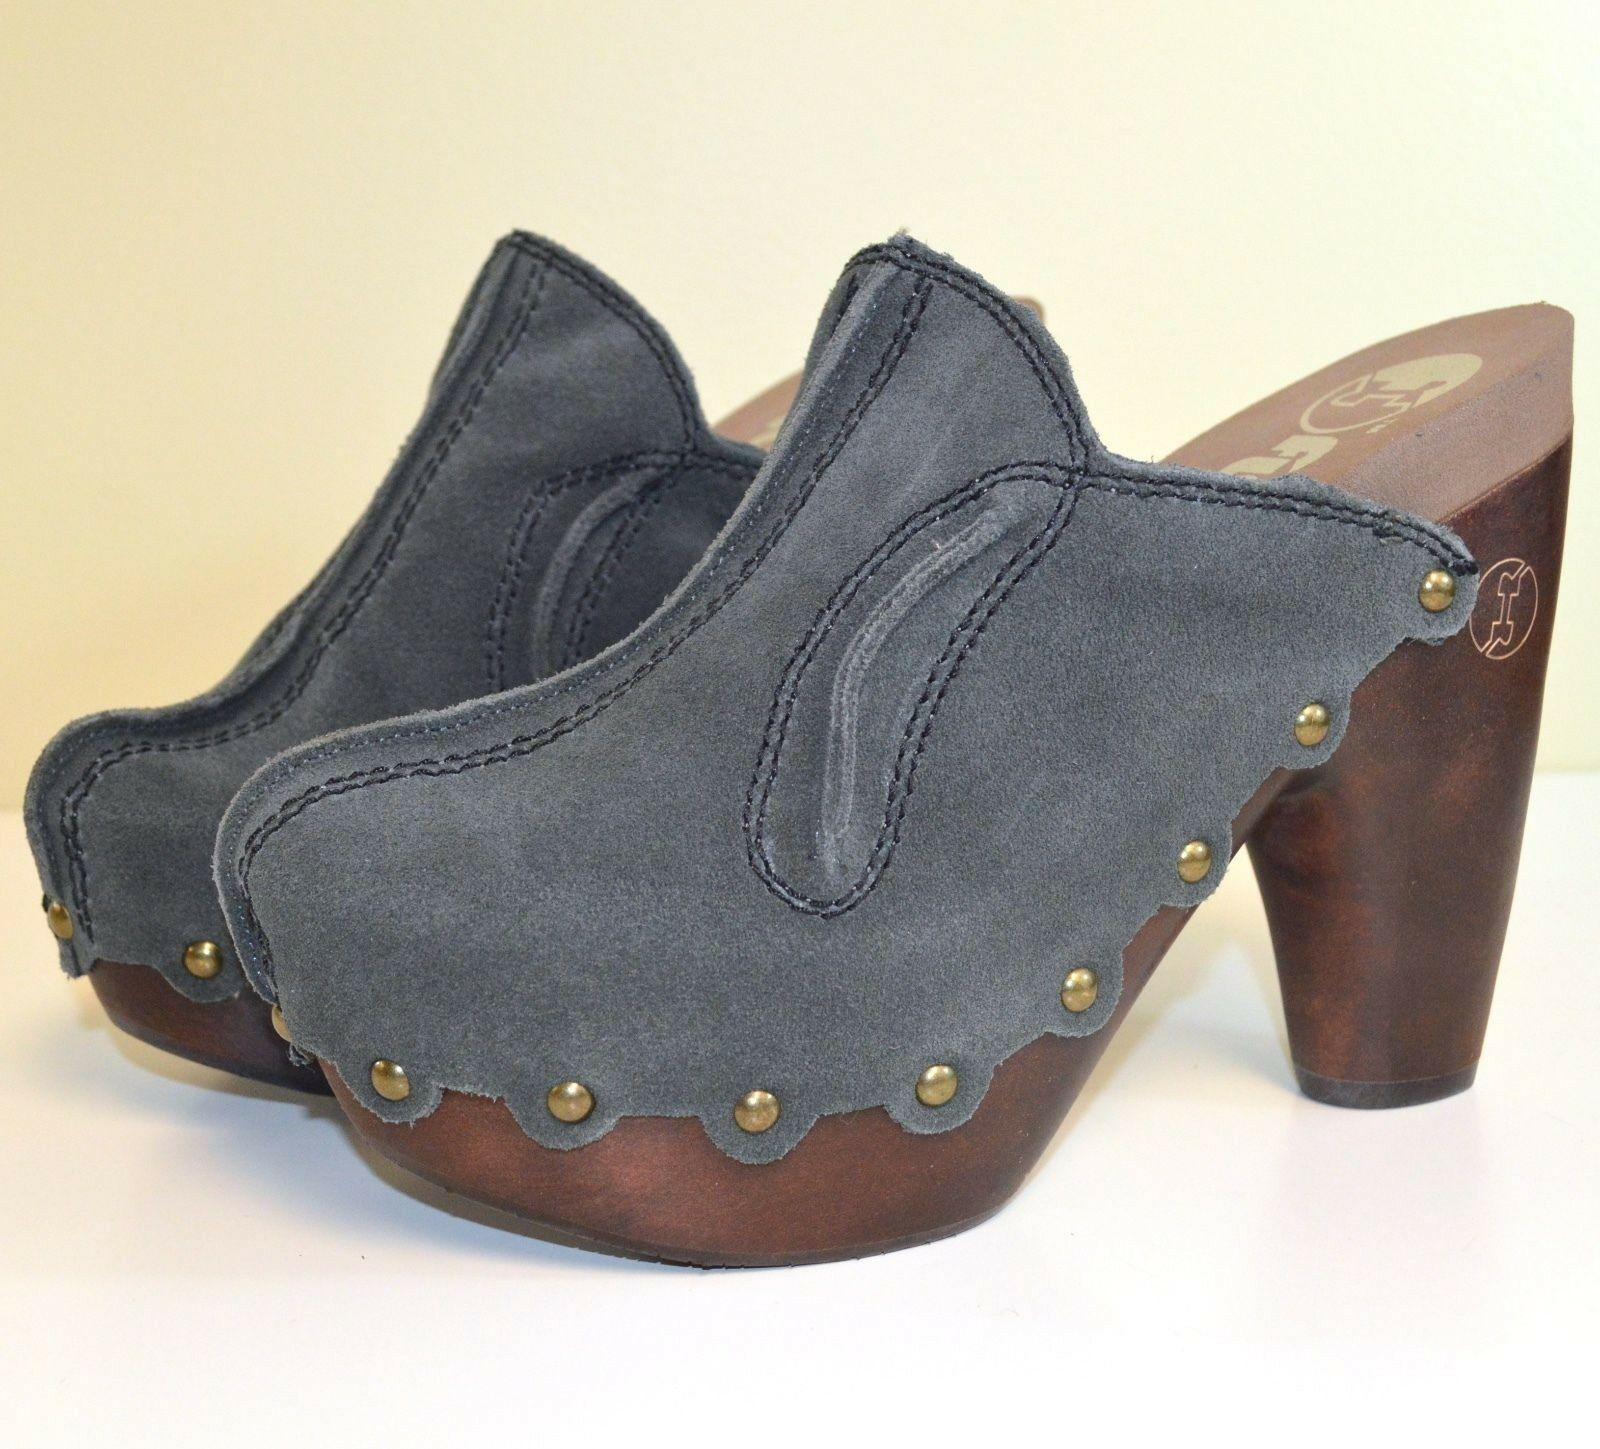 NIB Flogg Womens Diana Suede Heels Clogs Mules in Grey X1026 MSRP  150